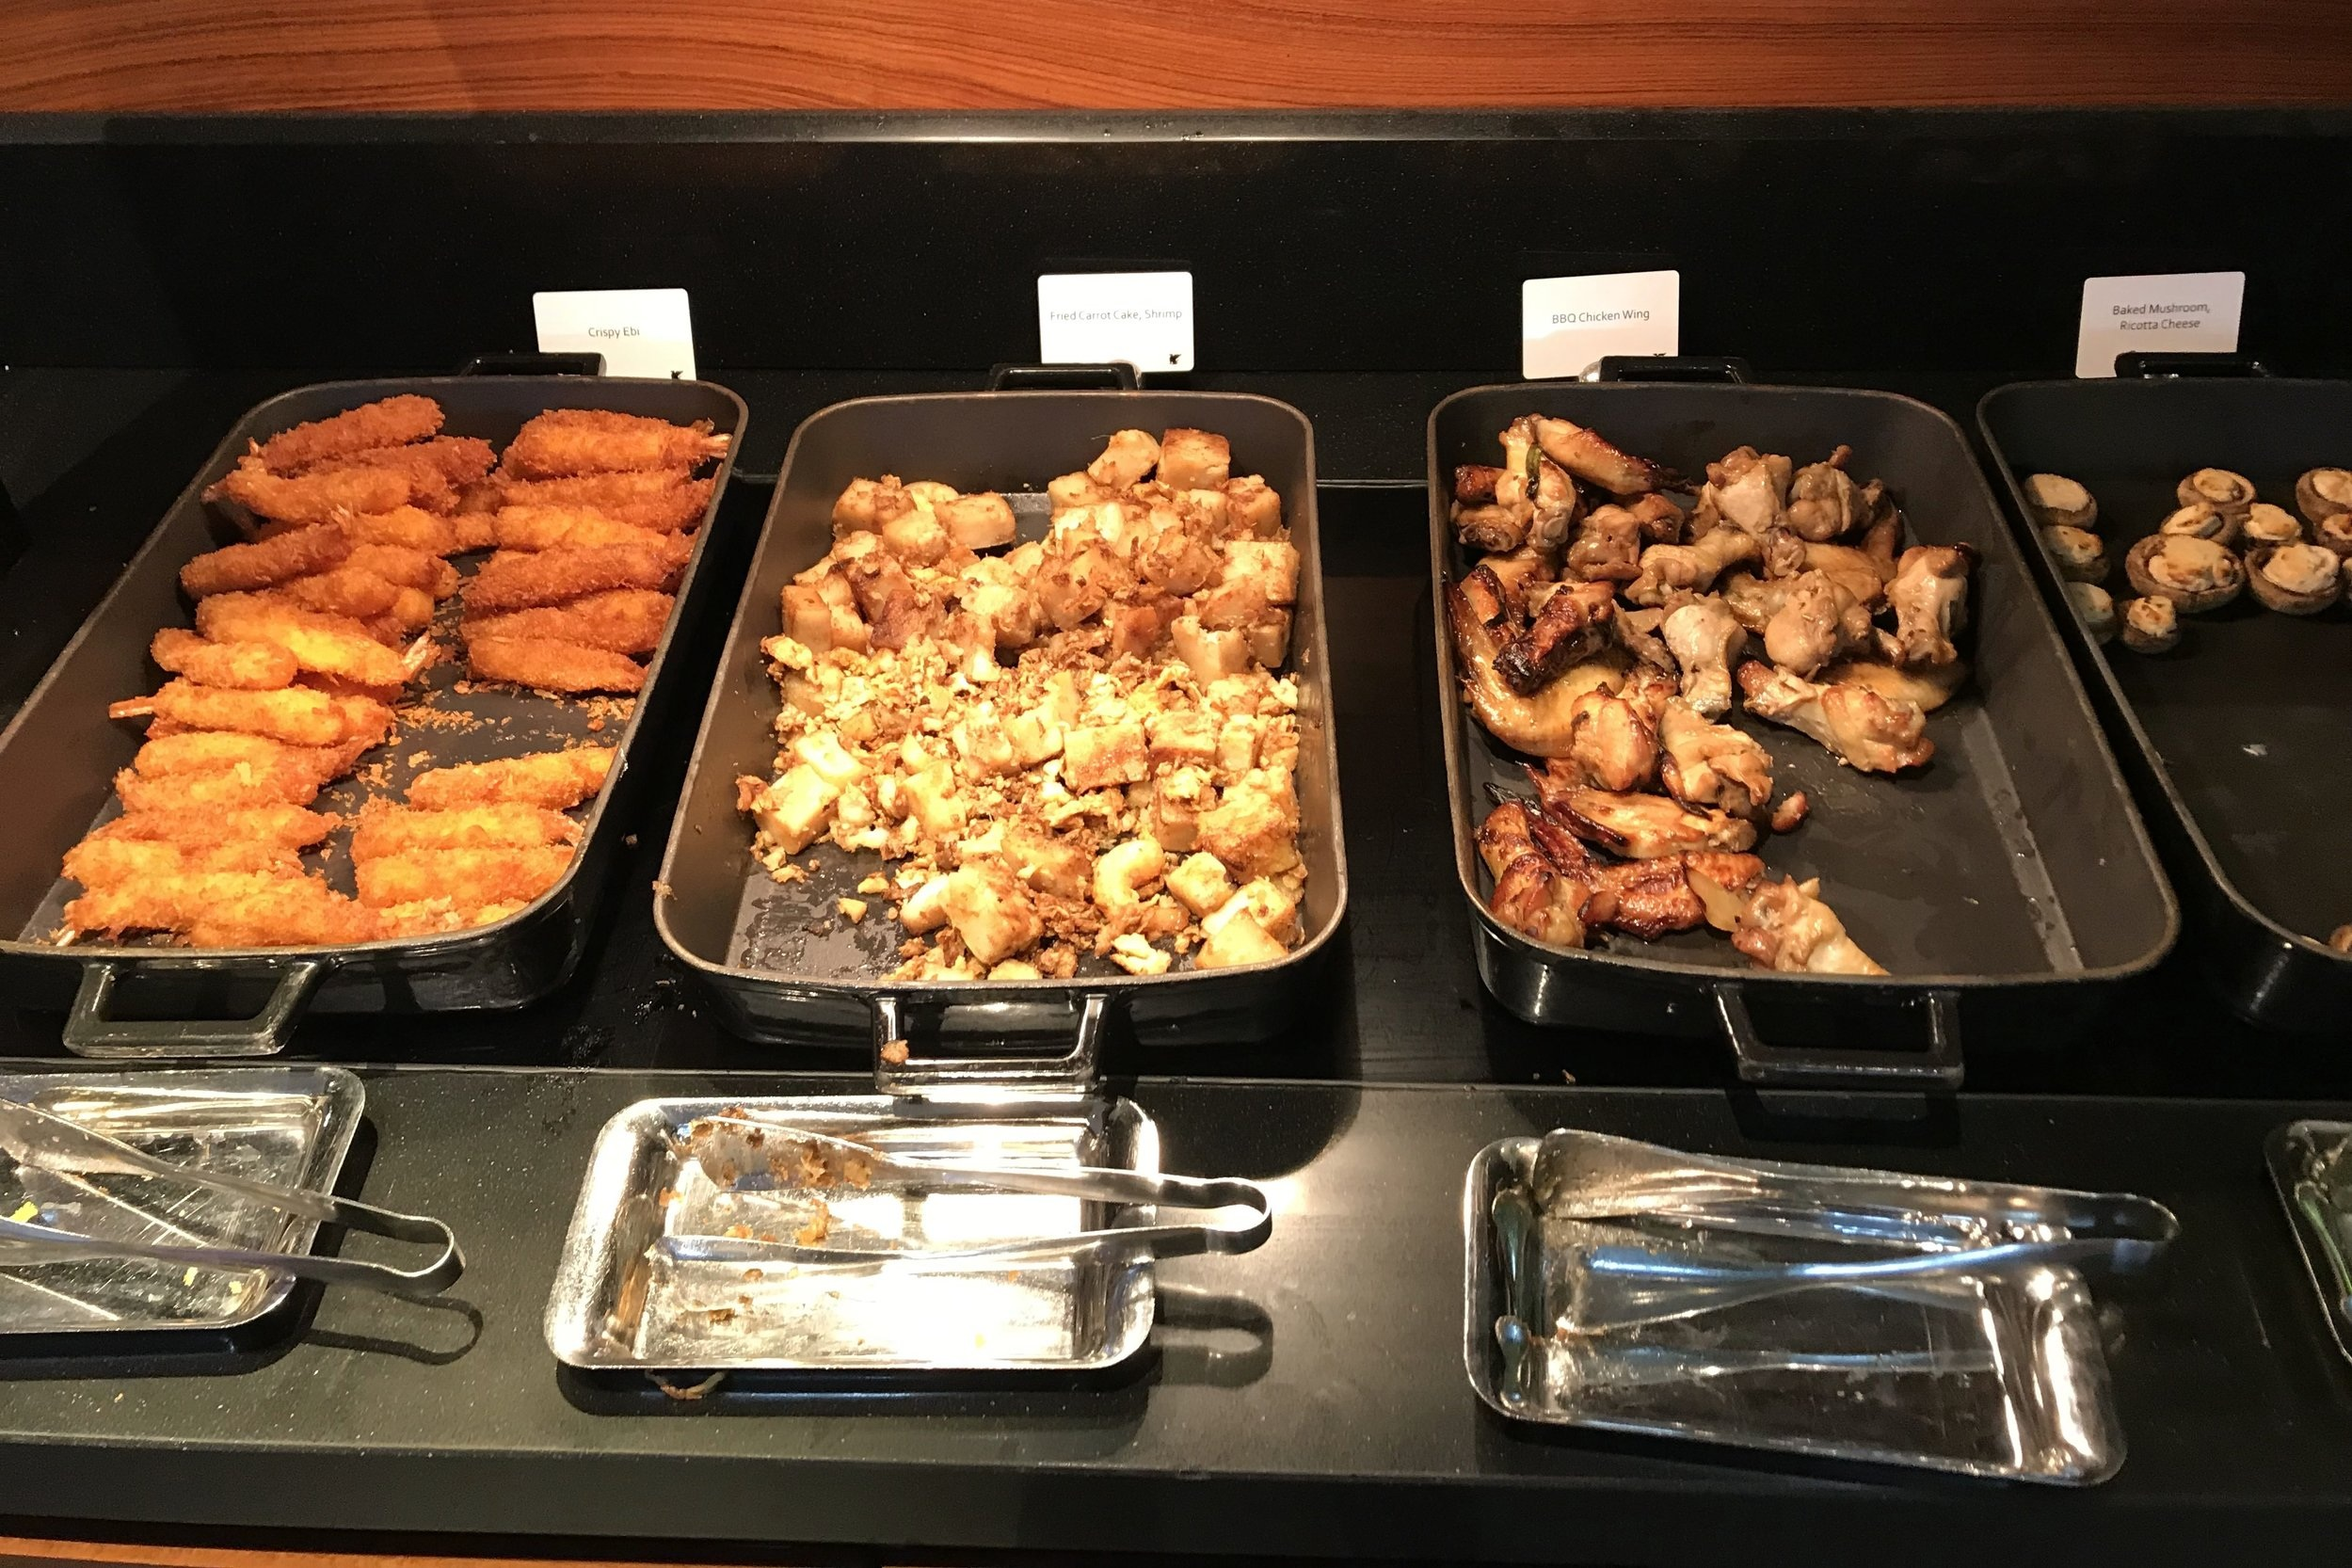 JW Marriott Singapore South Beach – Executive Lounge evening spread